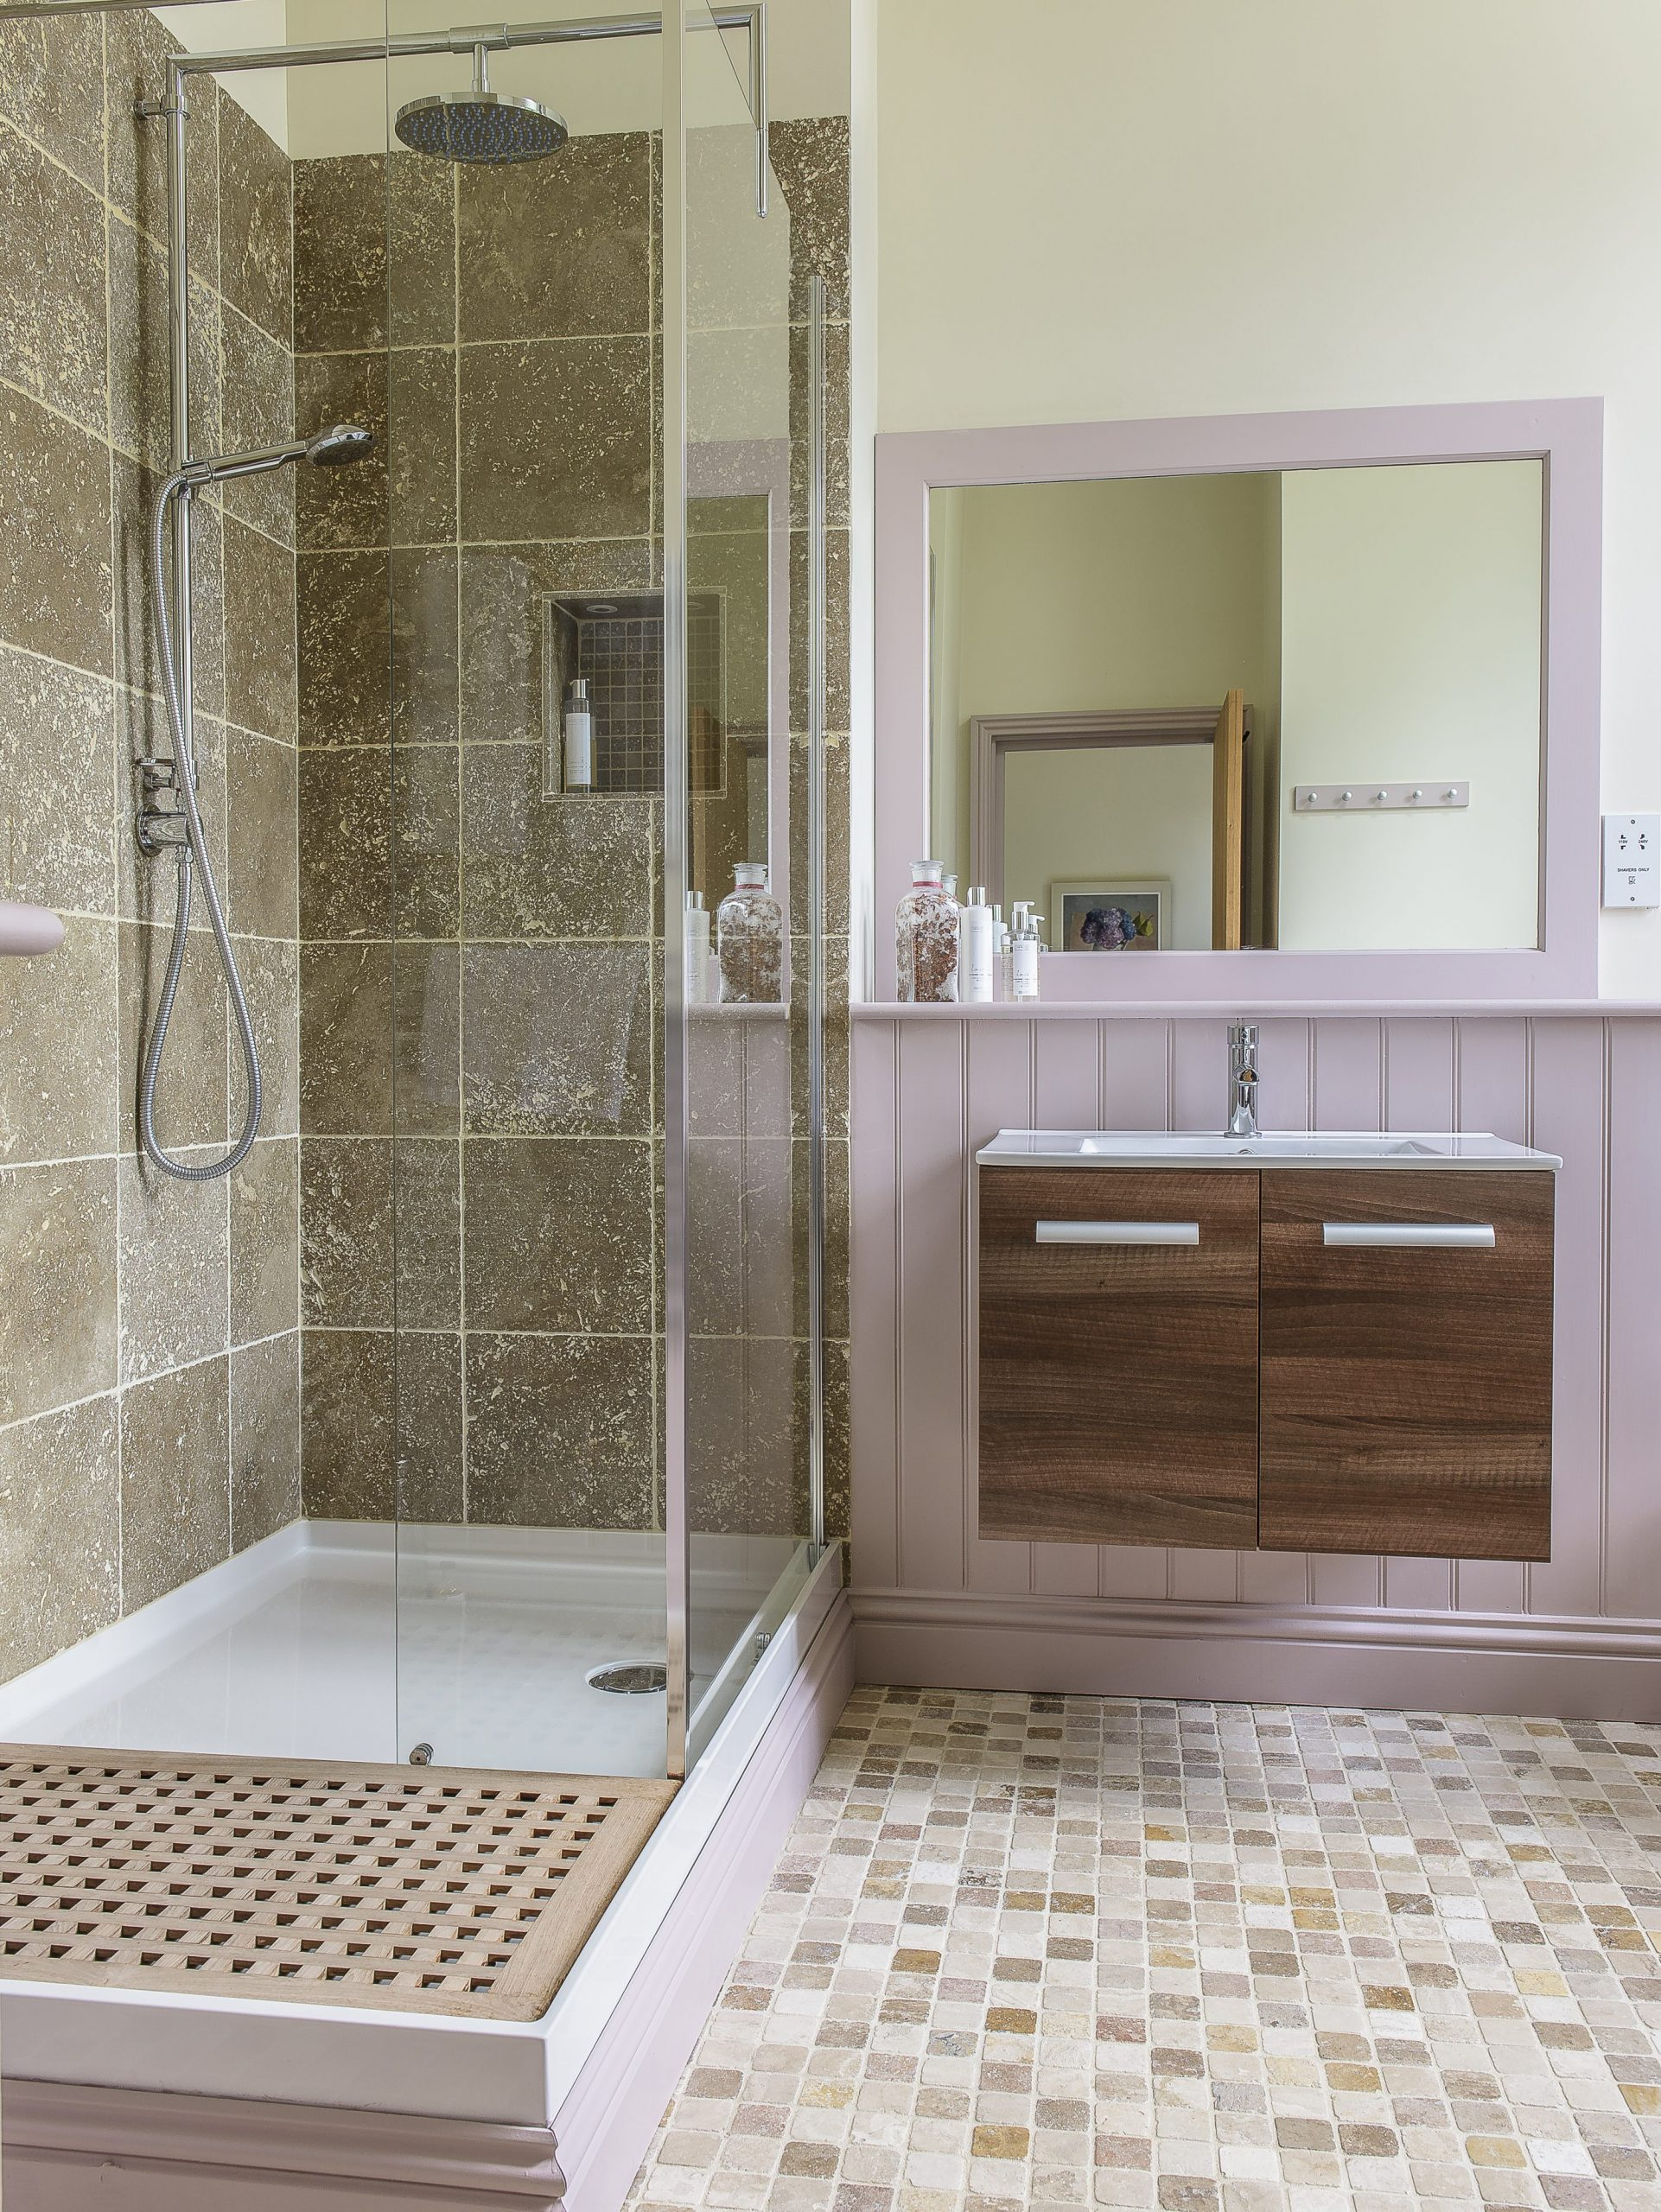 Pale pink panelling coupled with natural stone tiling and warm woods gives the en suite bathroom cosy appeal